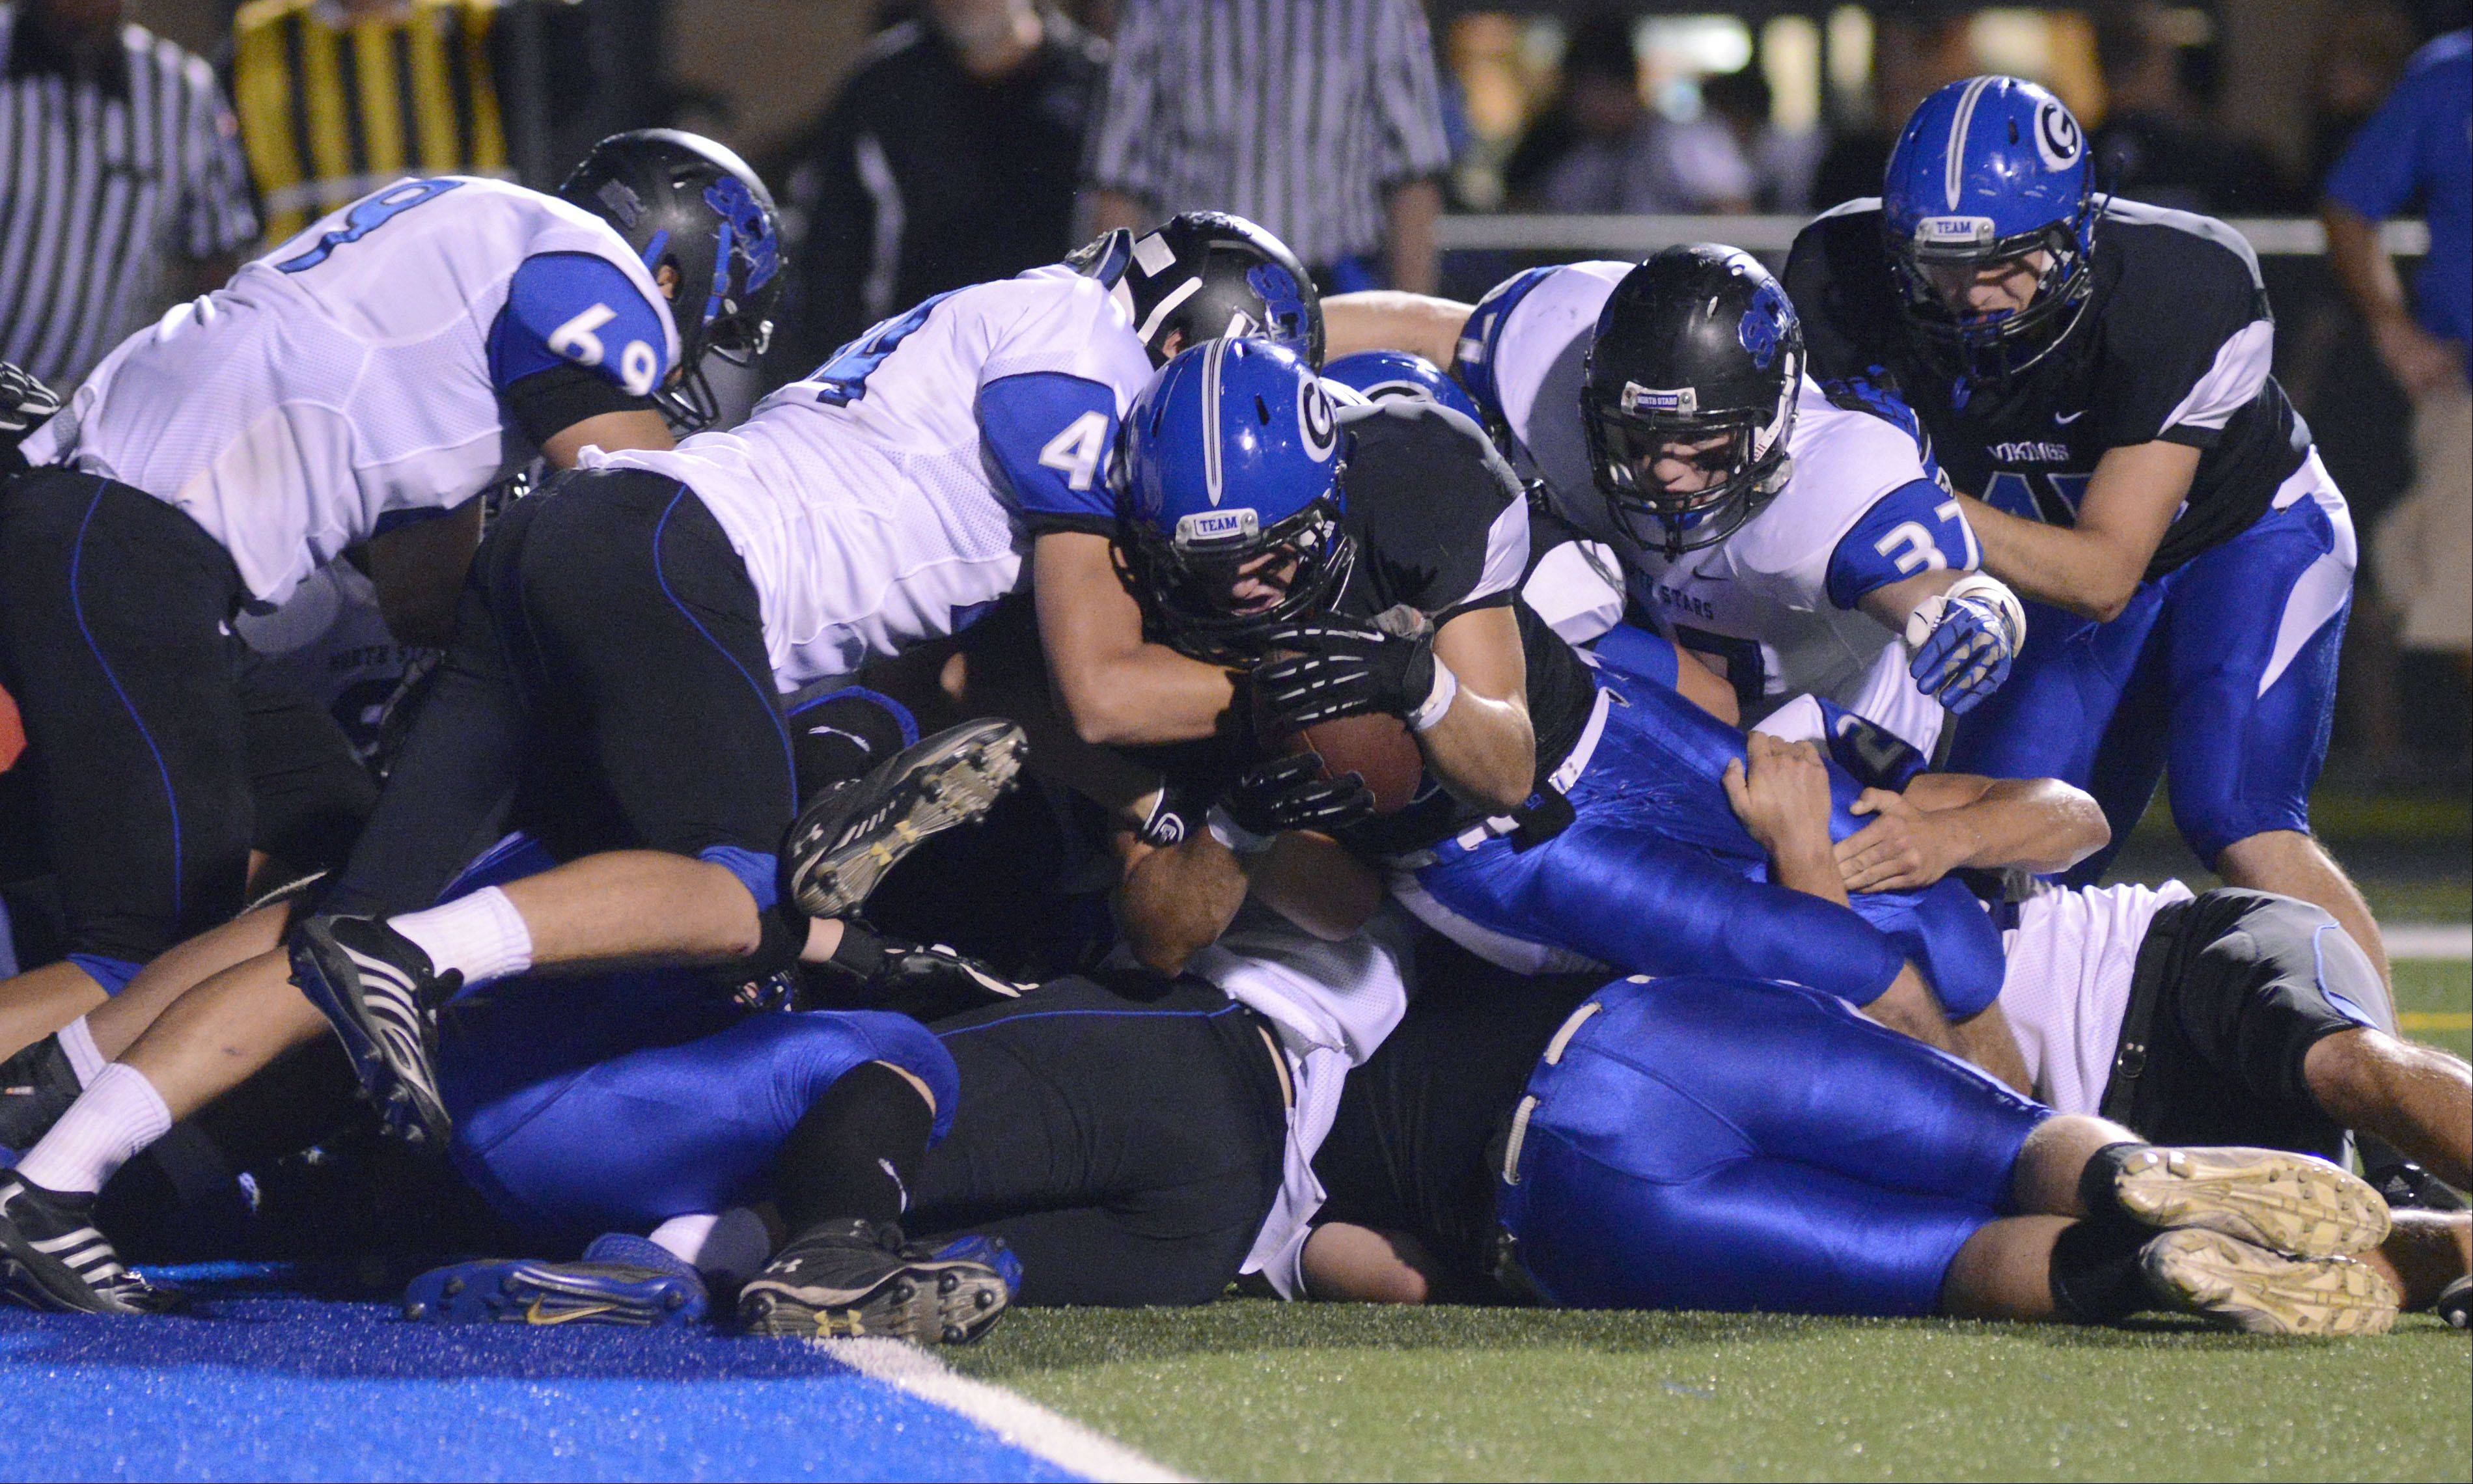 Ball carrier Geneva's T.J. Miller is stopped cold and piled upon just inches from the end zone in the first quarter.